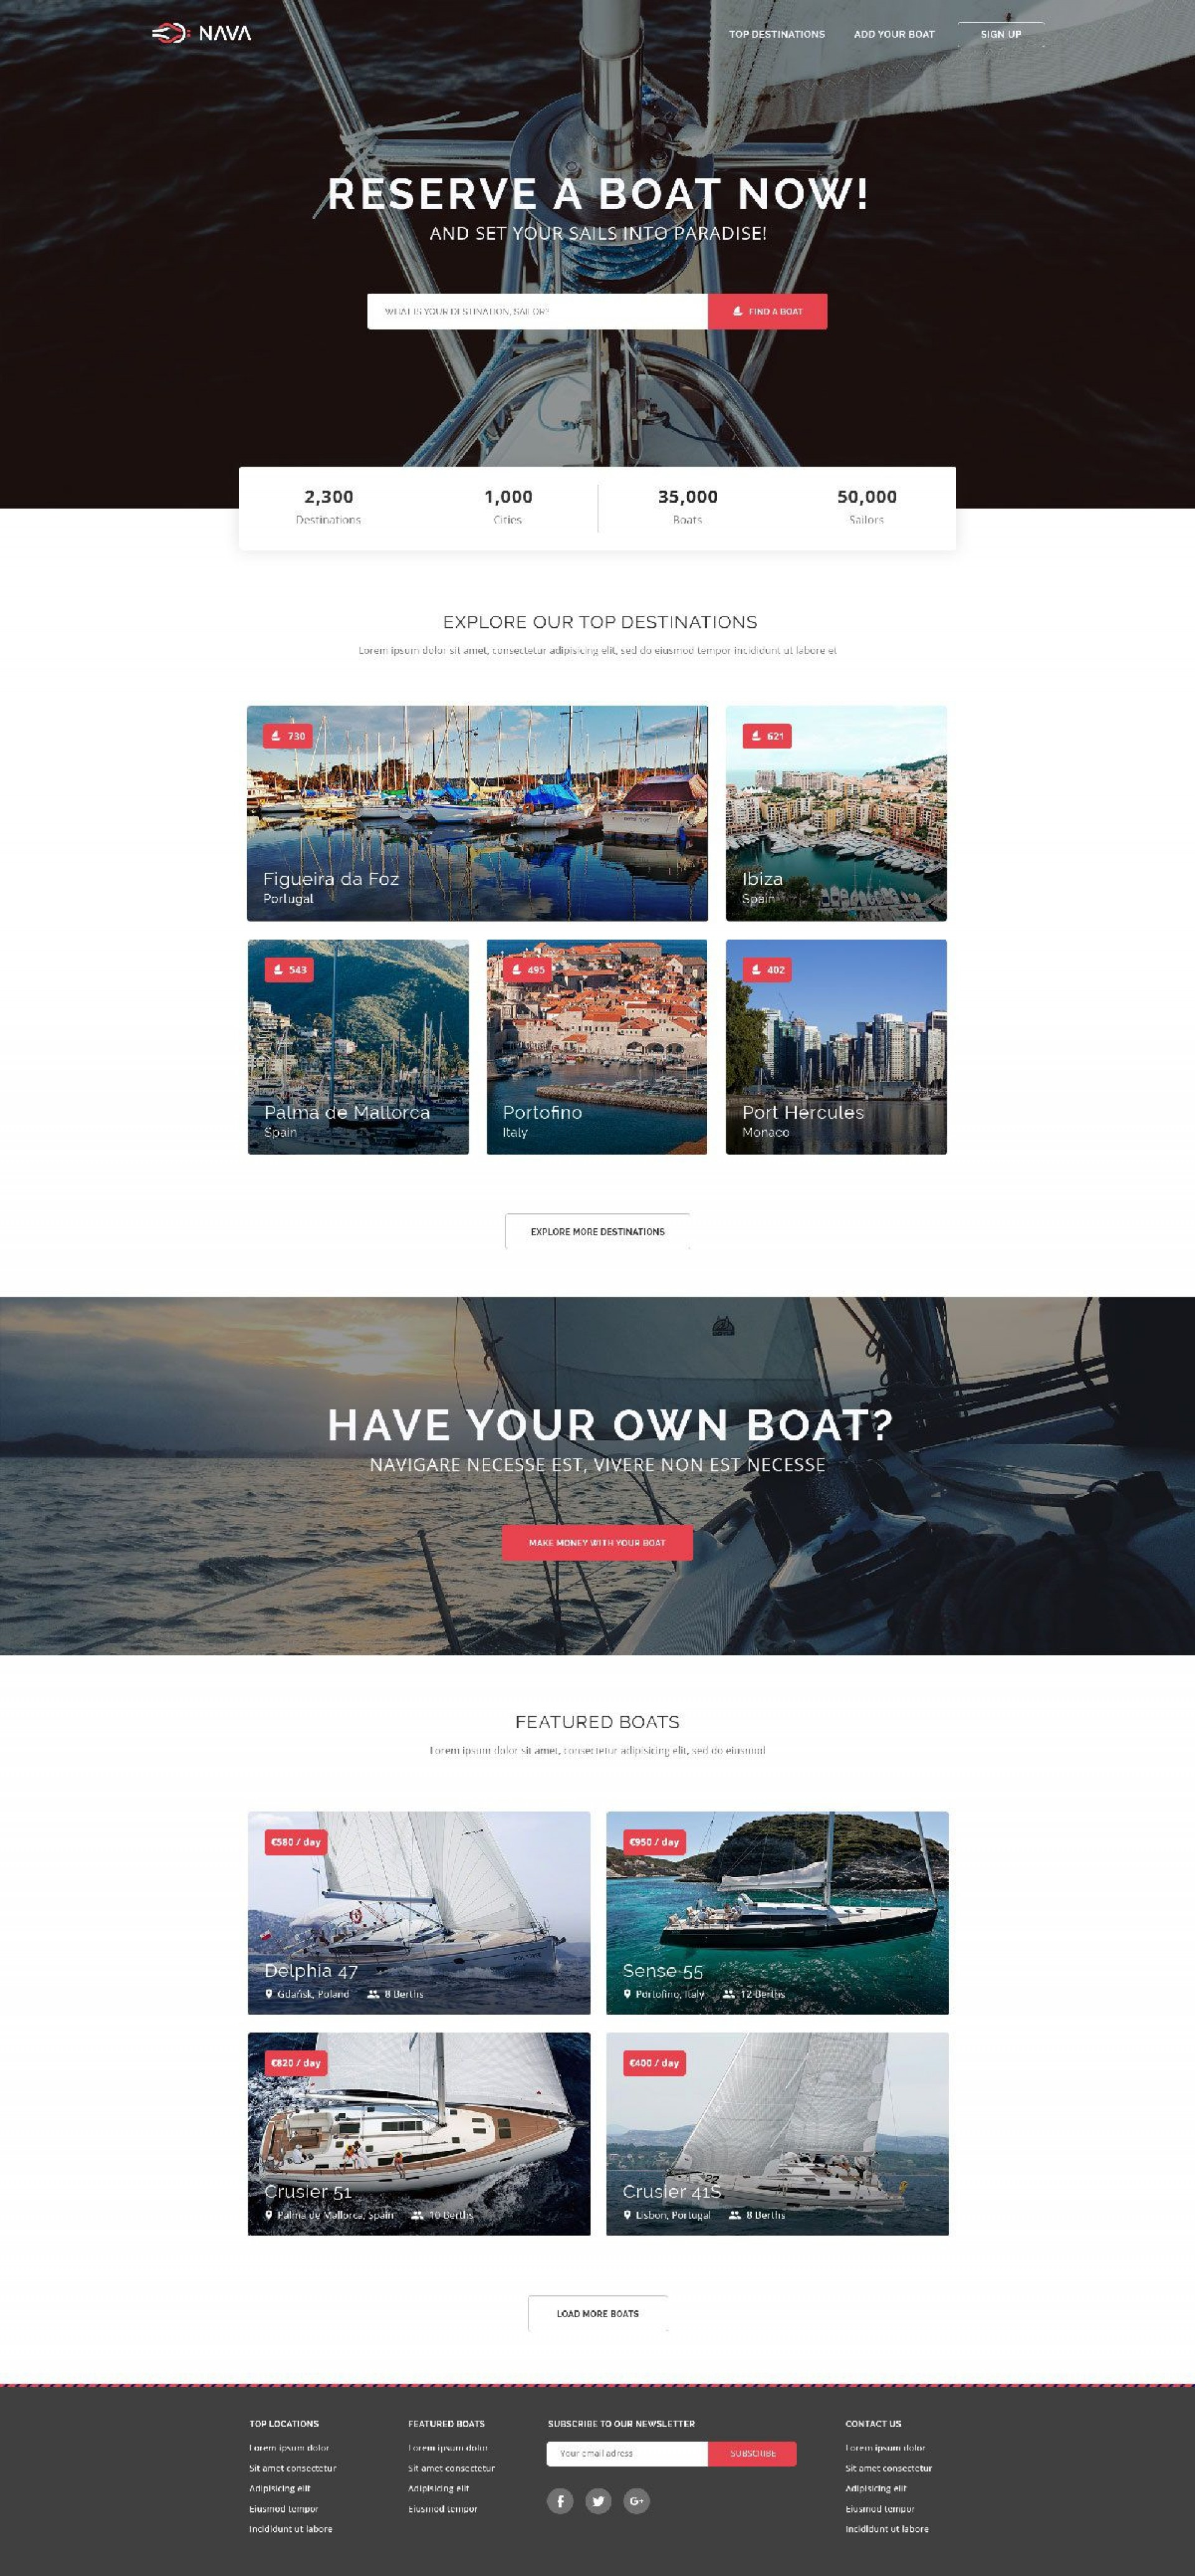 006 Remarkable One Page Website Template Psd Free Download Idea 1920